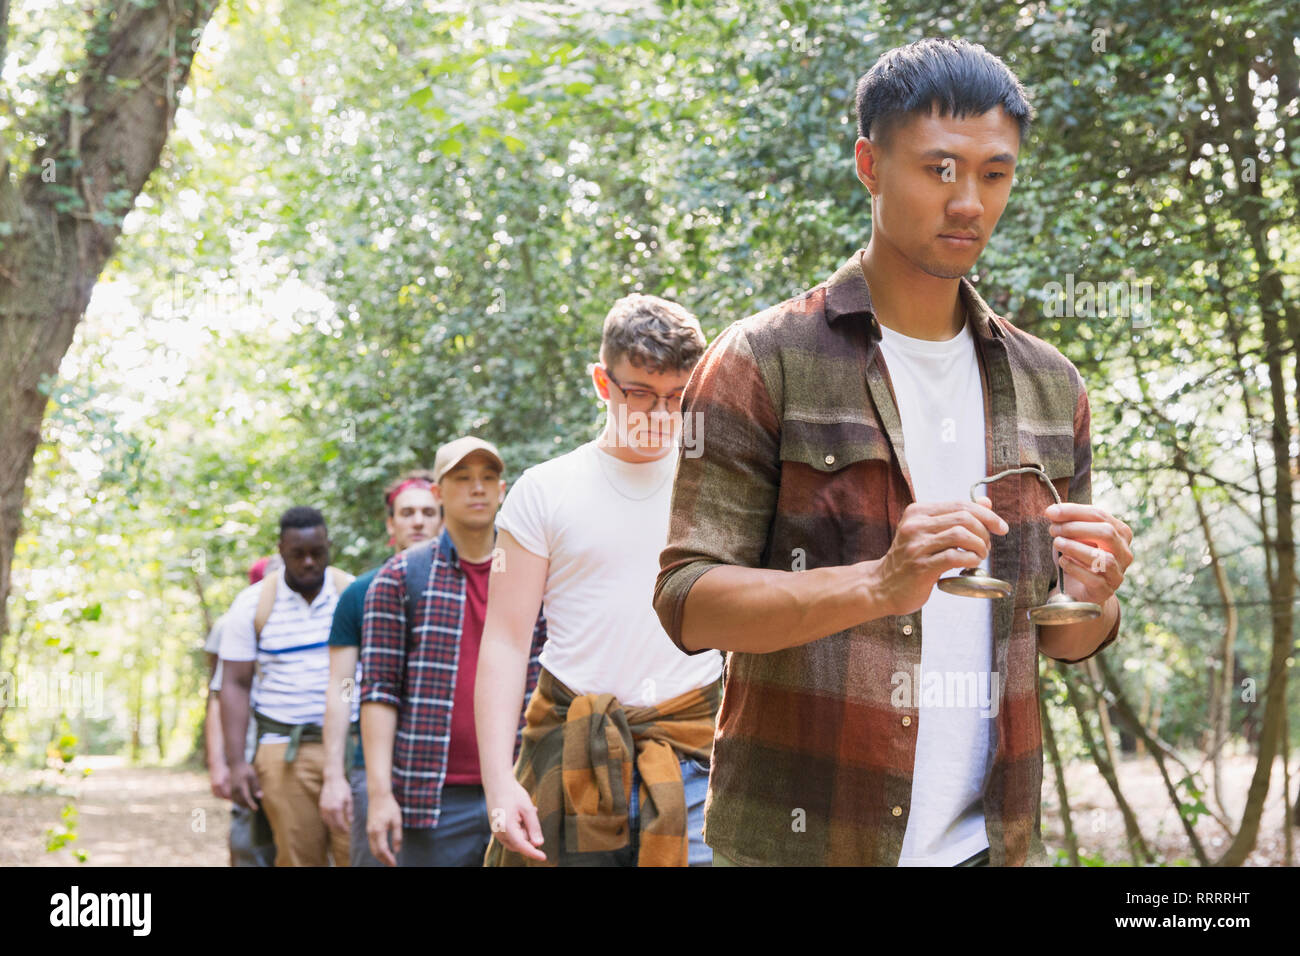 Man with tingsha cymbals leading mens group hike in woods - Stock Image